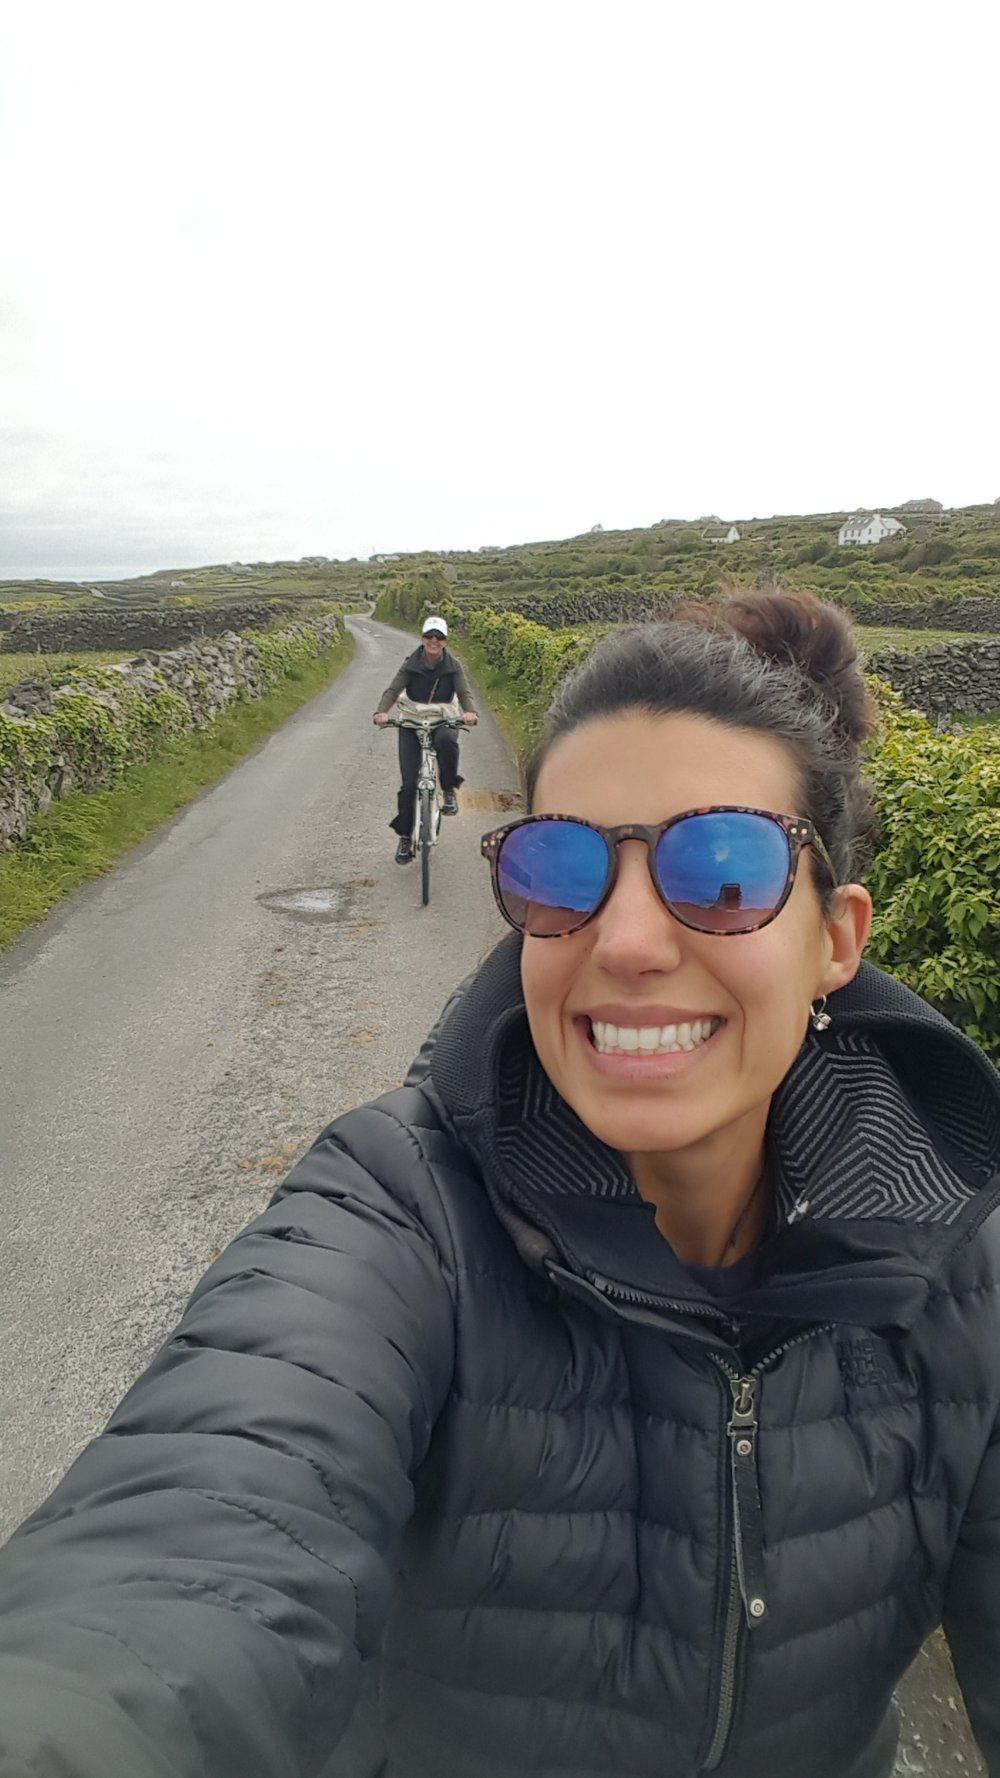 Hey! We do look happy cruising along in search of Dun Aengus